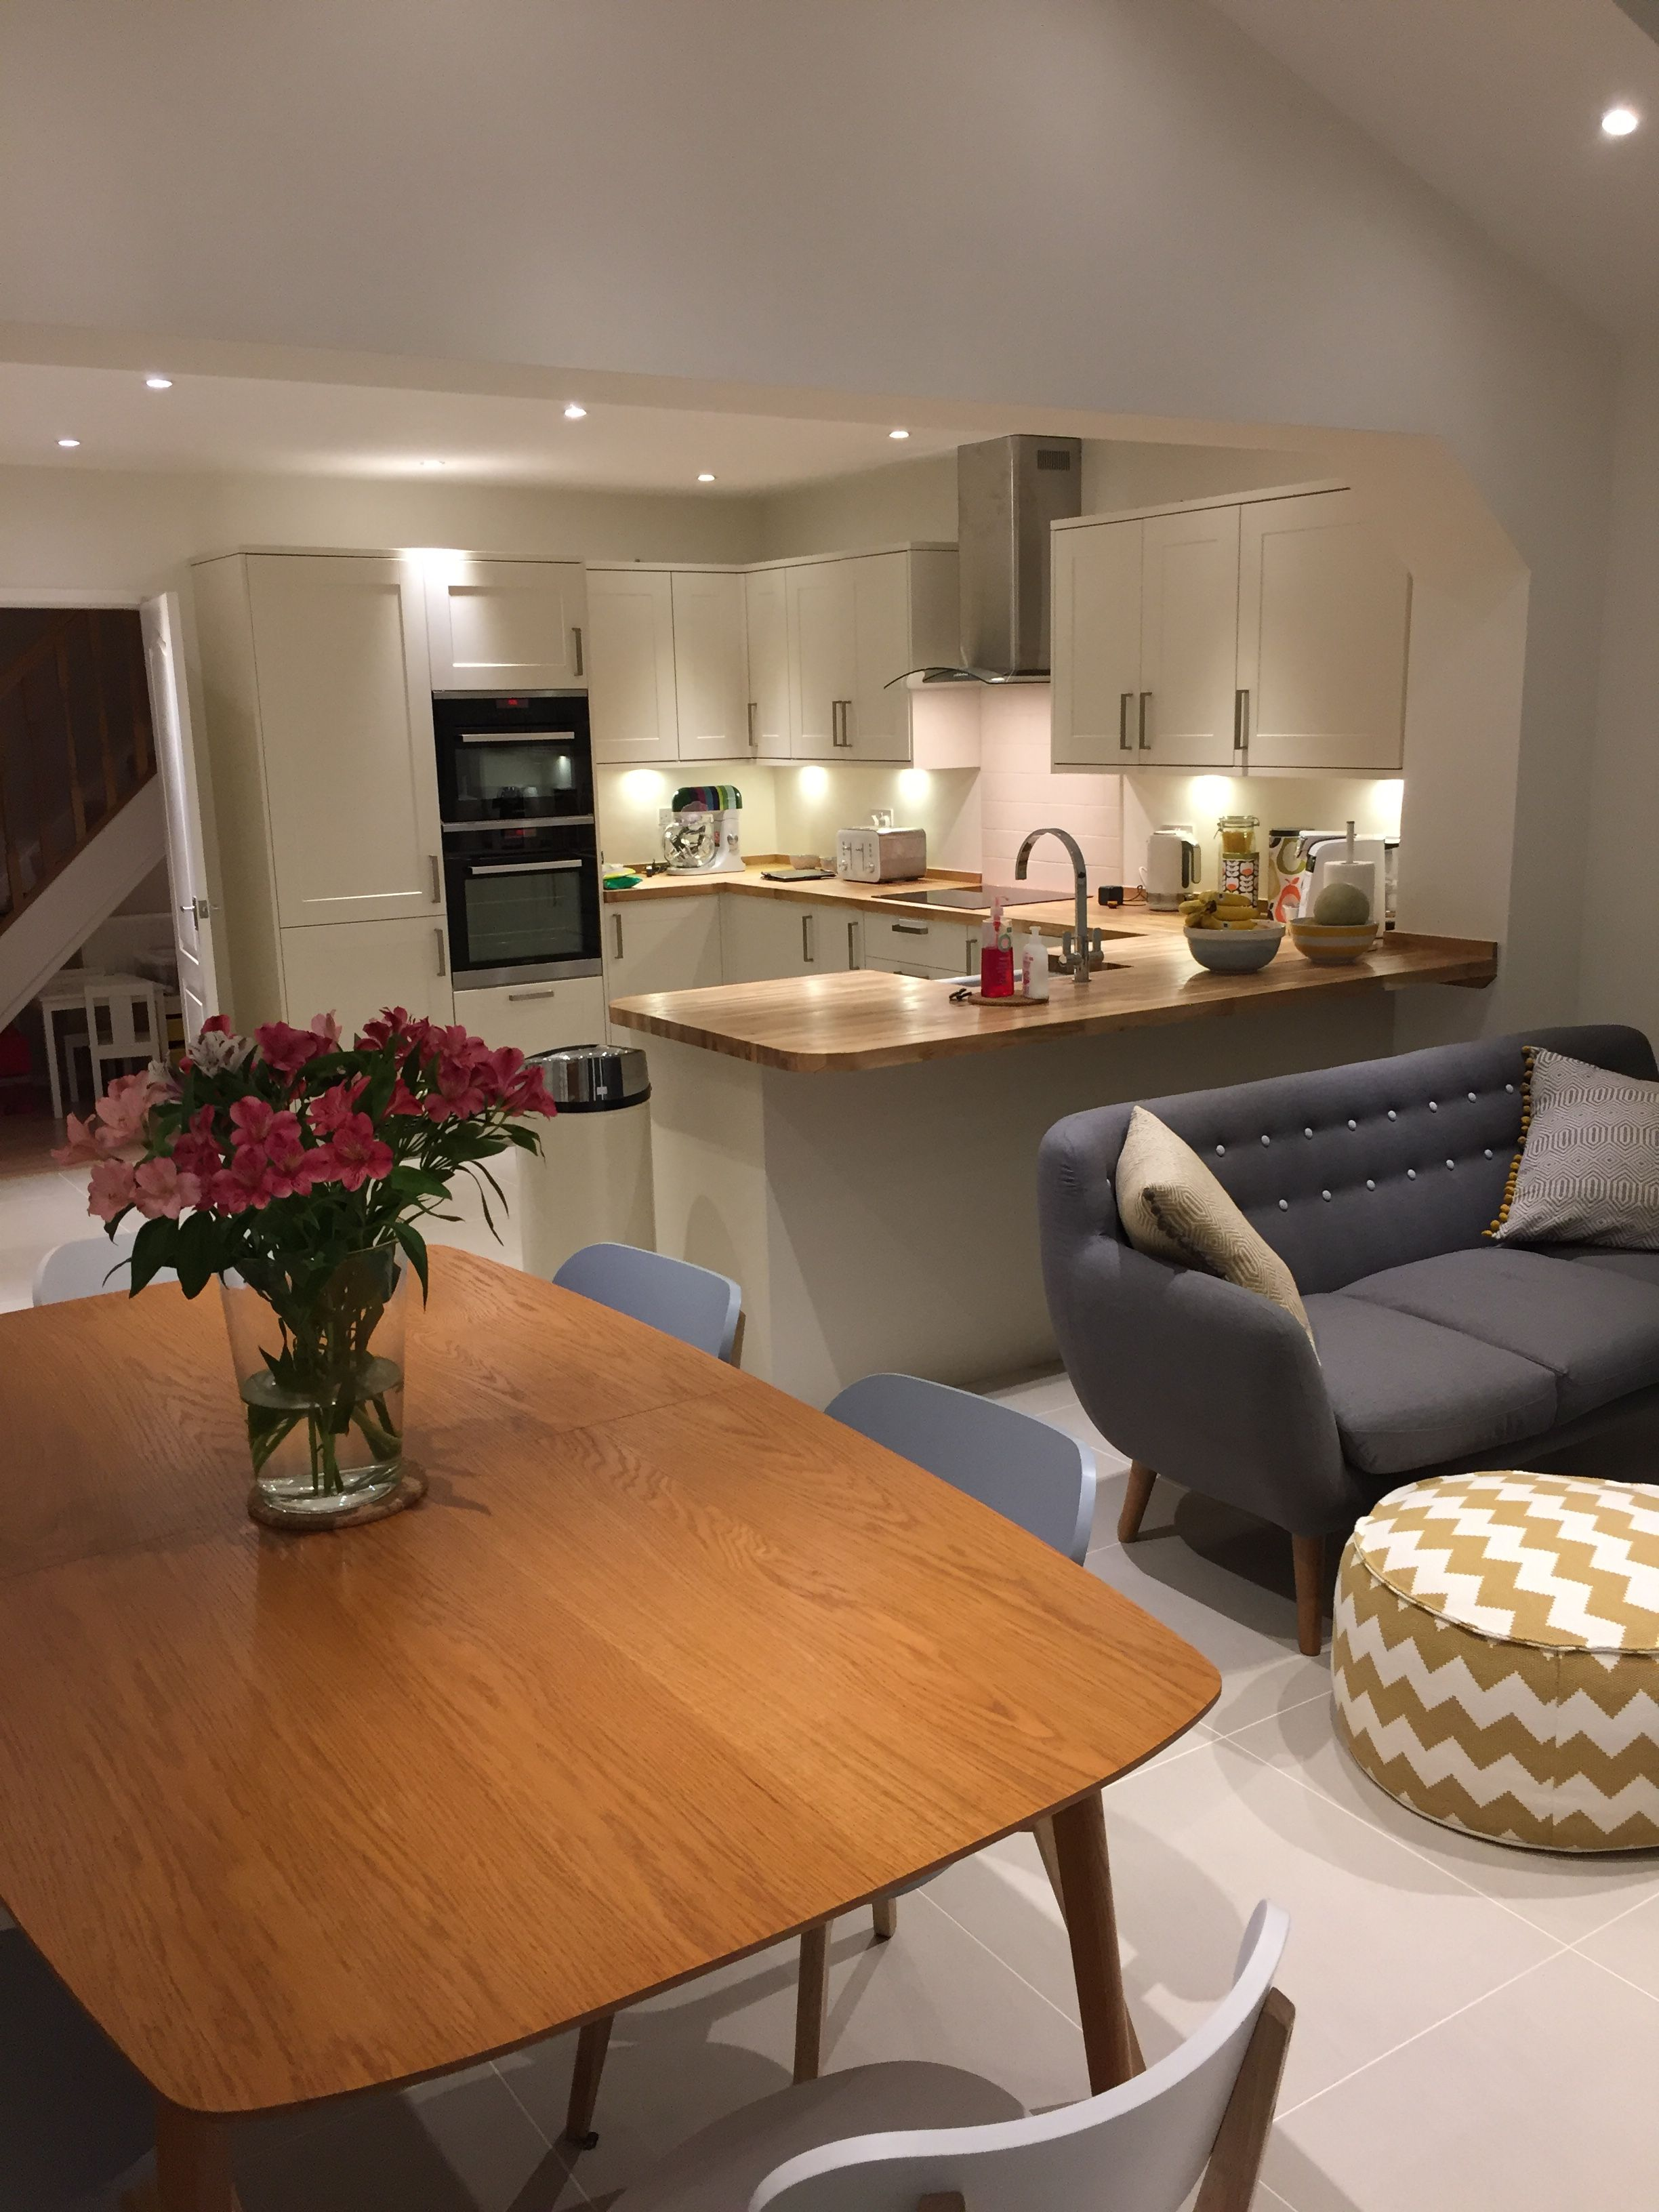 My Open Plan Kitchen Dining And Family Area Open Plan Kitchen Diner Open Plan Kitchen Living Room Open Plan